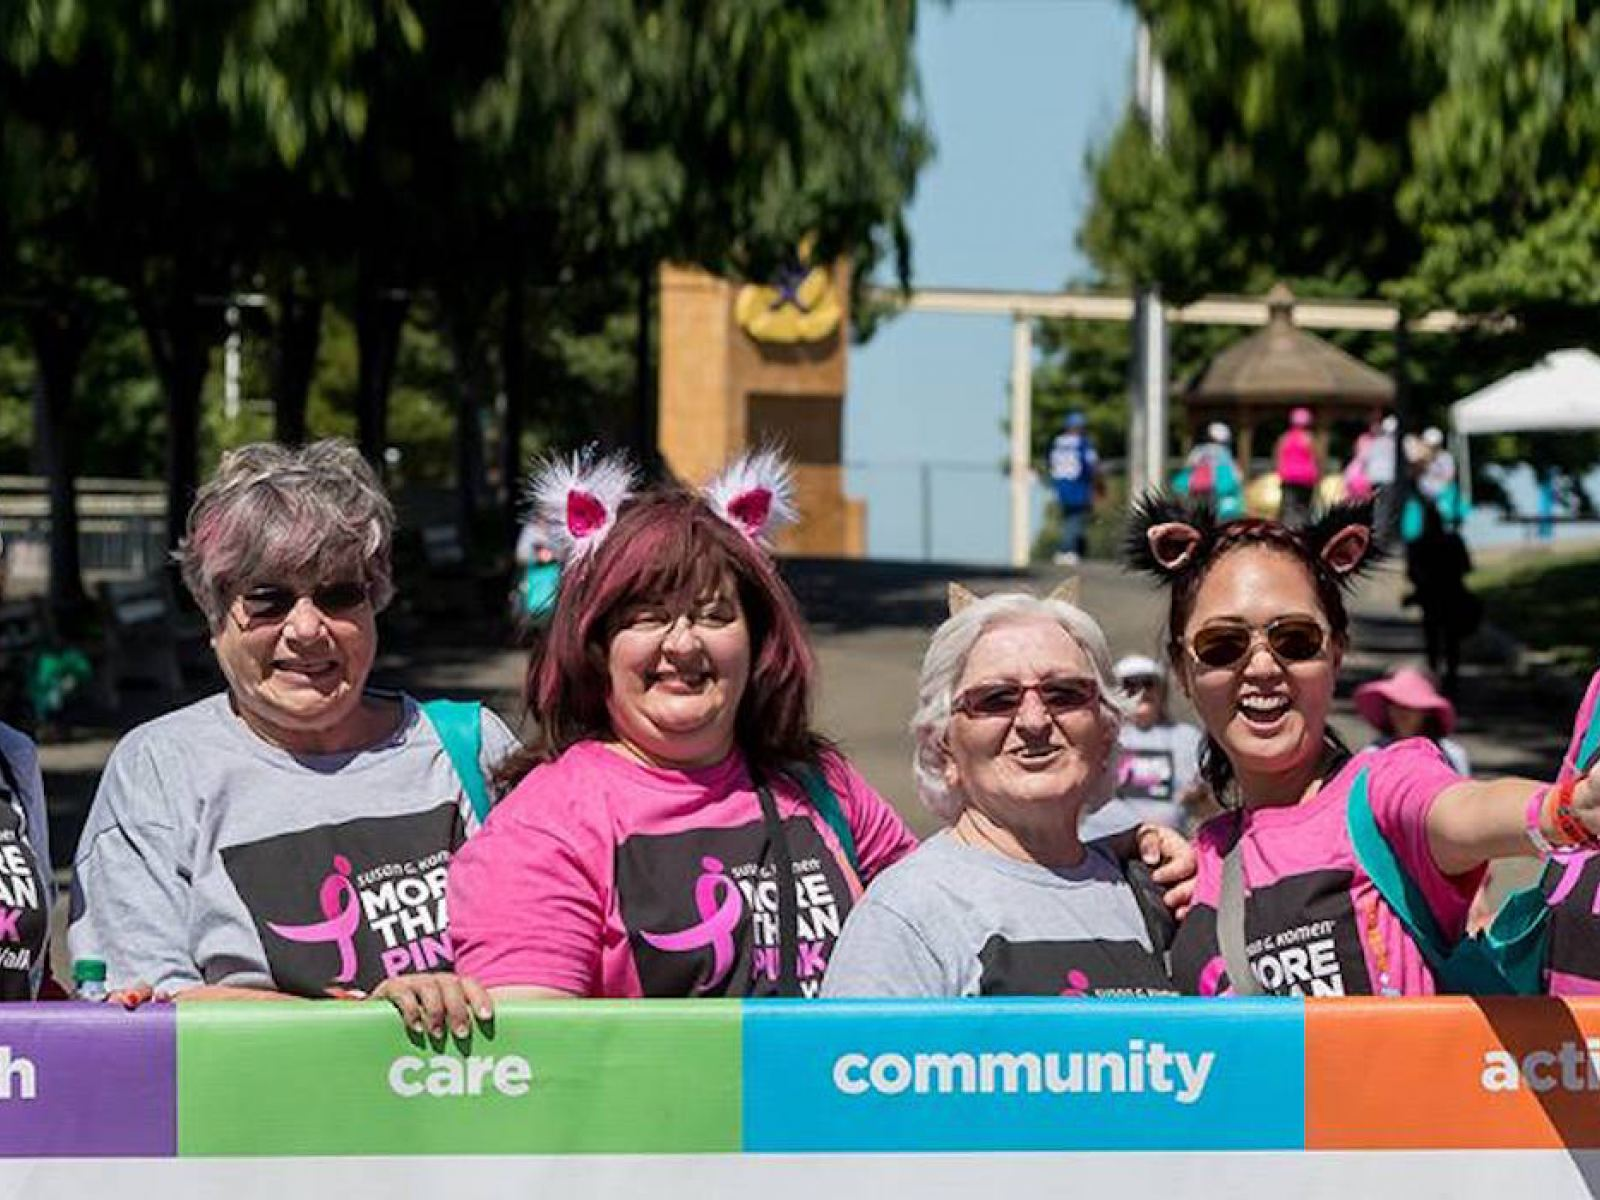 Main image for event titled Susan G. Komen Los Angeles County More Than Pink Walk